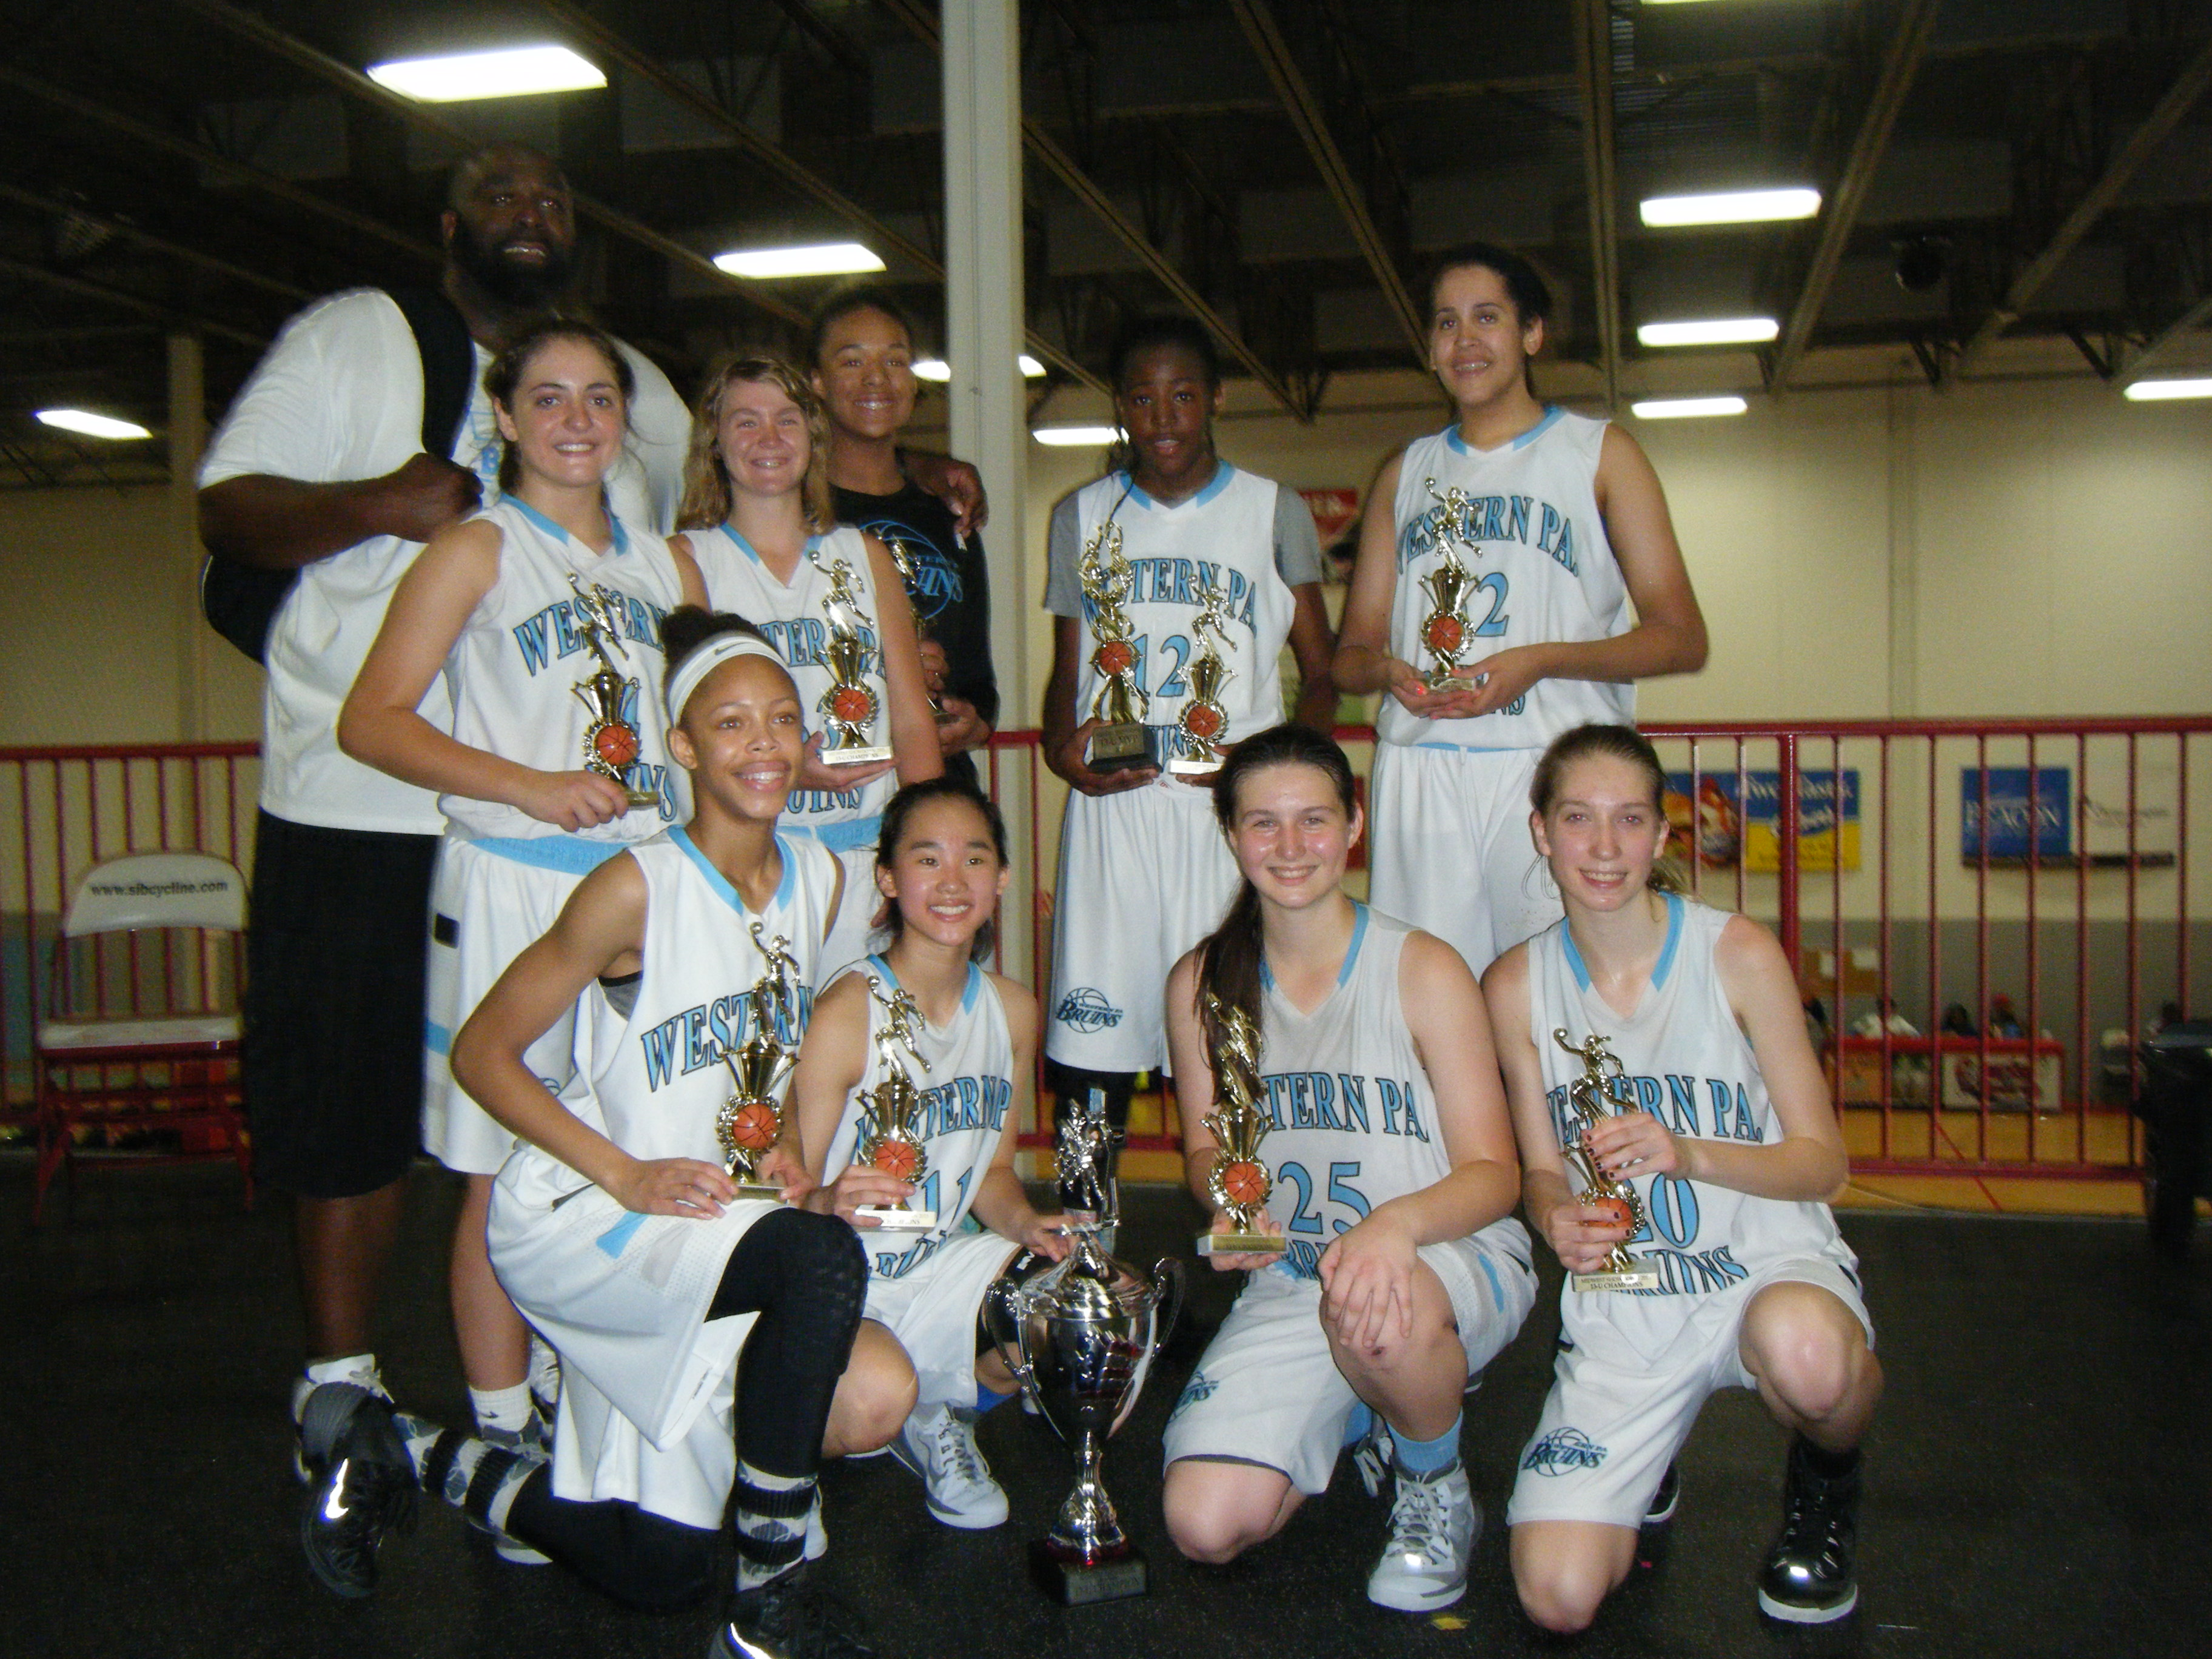 Western PA Bruins - Tate, Midwest Showdown 2015 8th Grade Division Champions